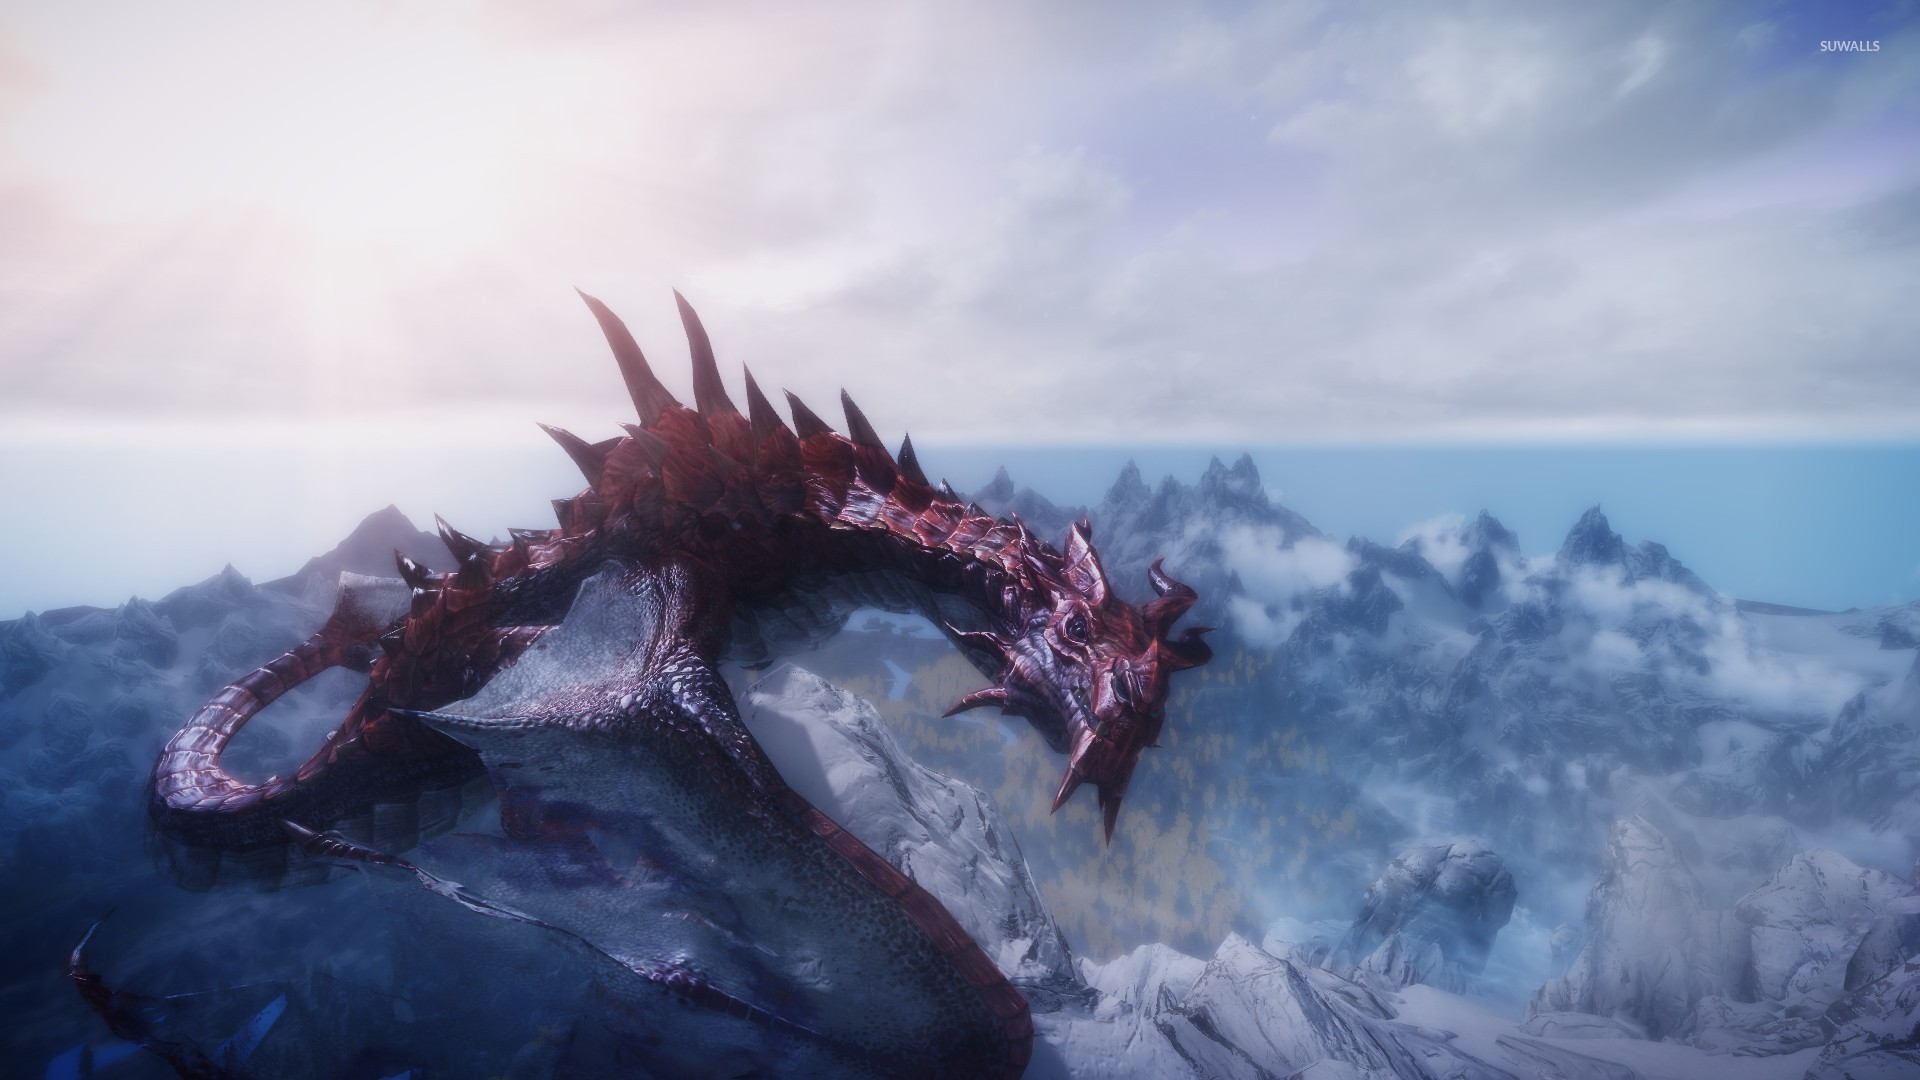 Red Dragon In The Elder Scrolls V Skyrim Wallpaper Game